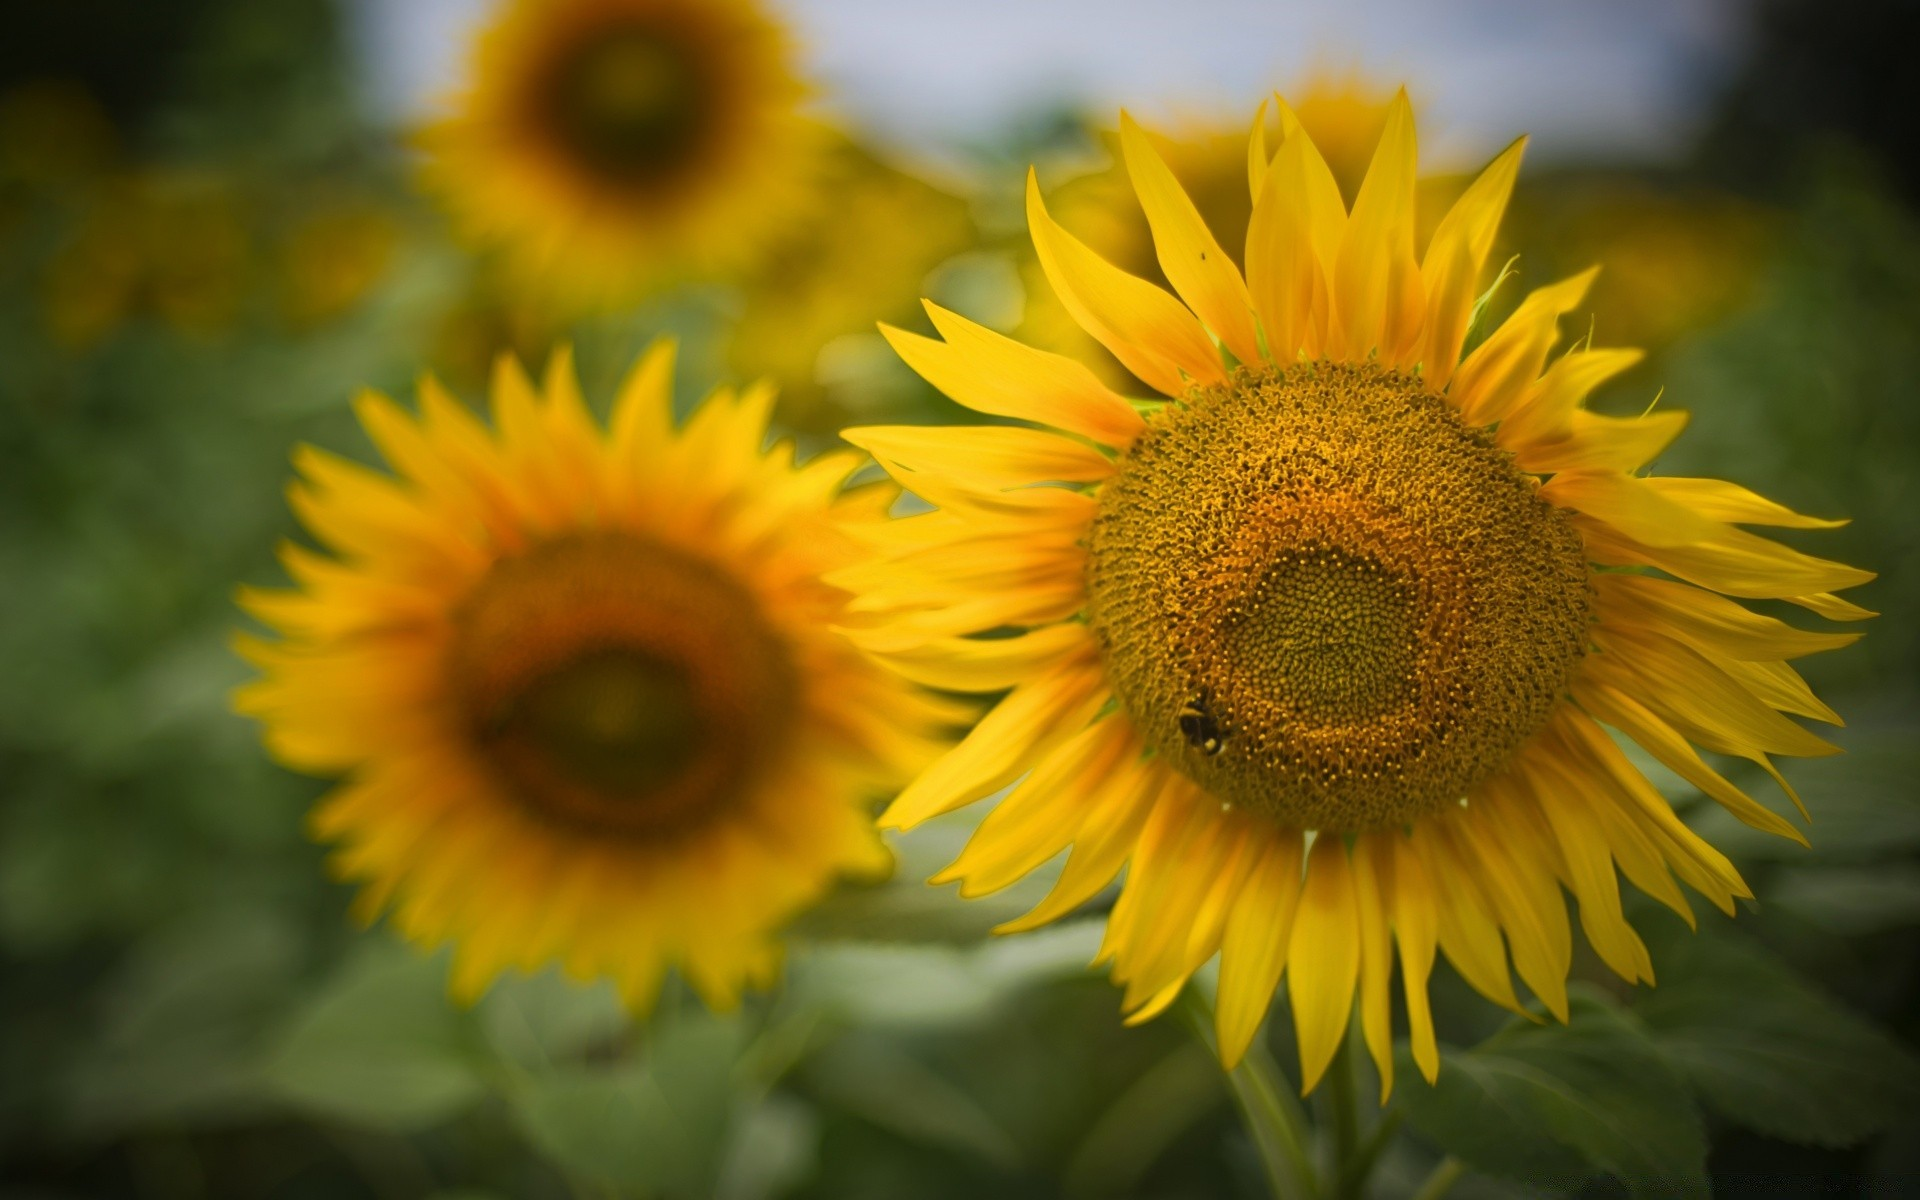 flowers nature flora flower sunflower summer leaf garden petal bright floral growth sun beautiful color blooming close-up fair weather vibrant field